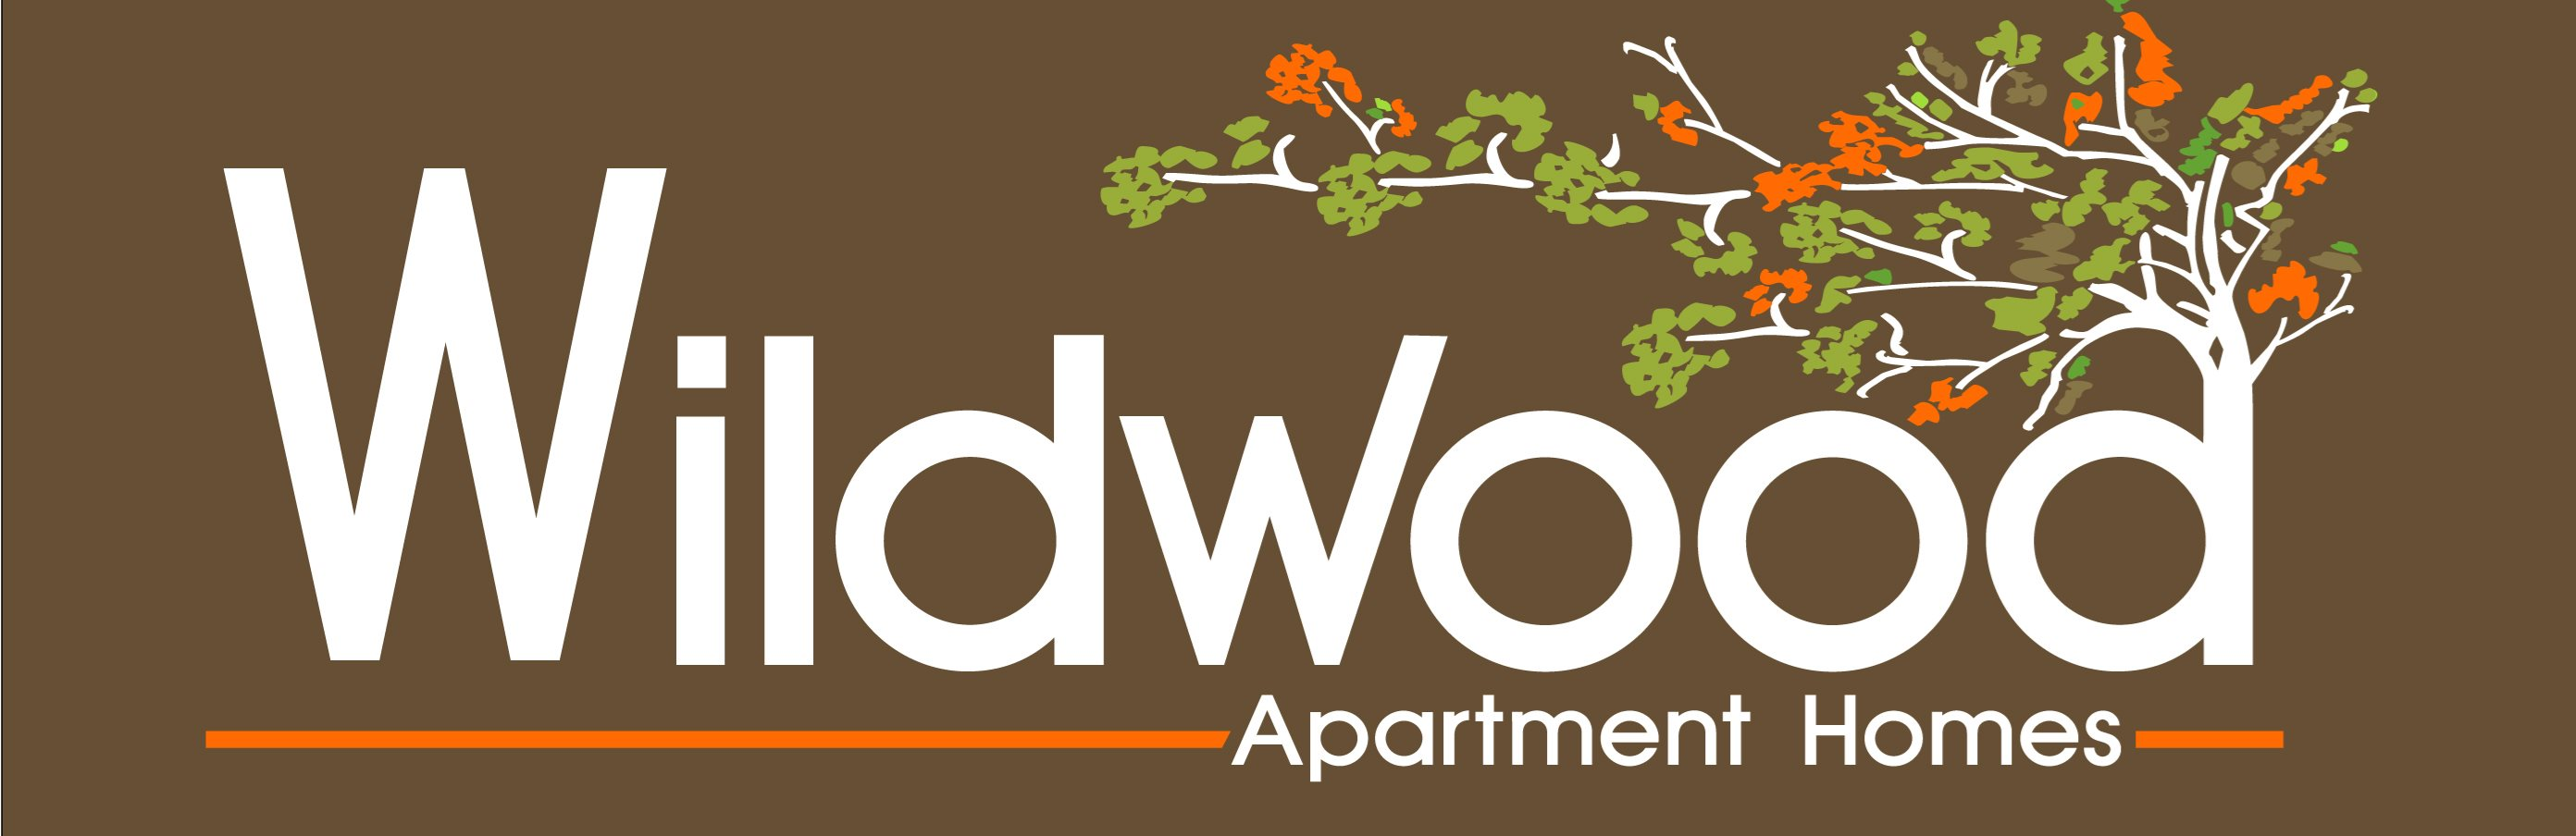 Wildwood Apartments, Austin, Texas